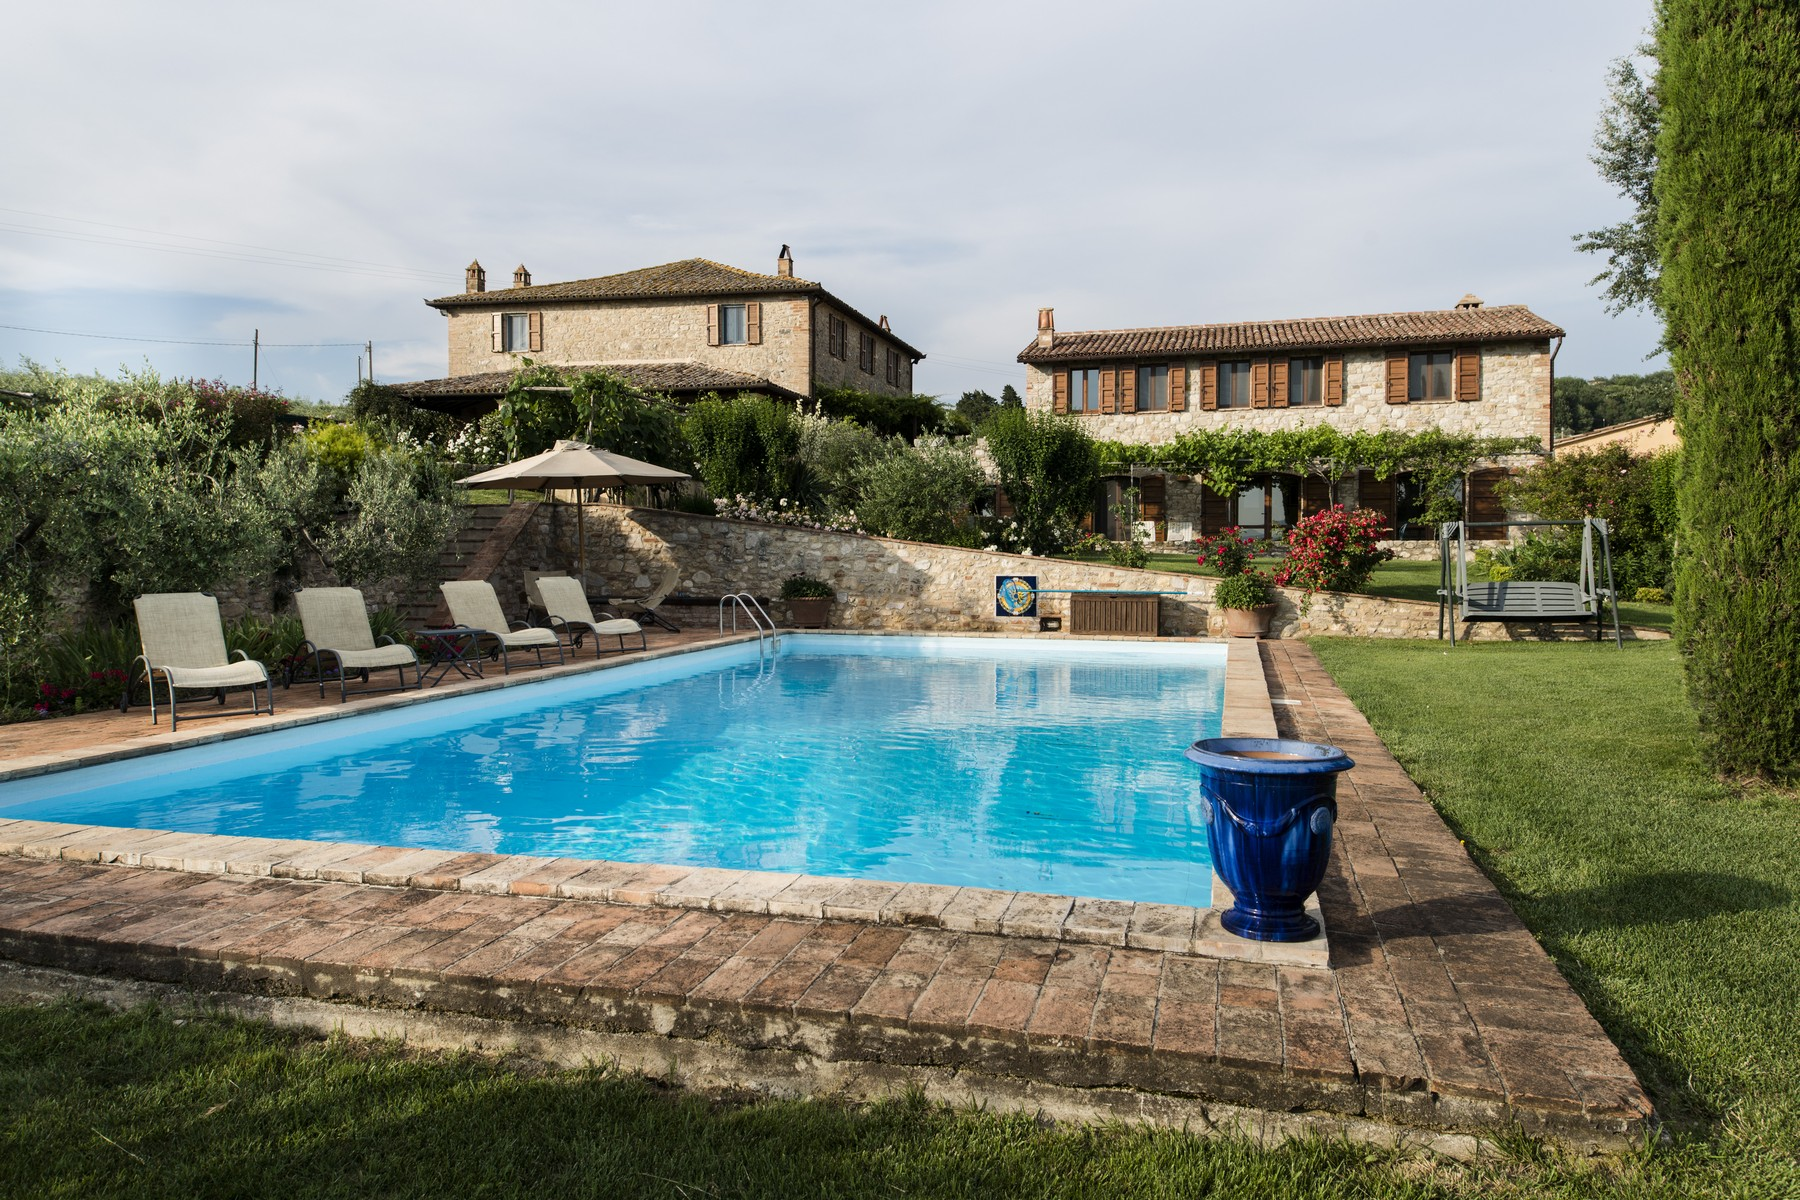 Single Family Home for Sale at Enchanting estate on the Umbrian hills Todi Frazione Monticello vocabolo le mandorelle Todi, Perugia 06059 Italy